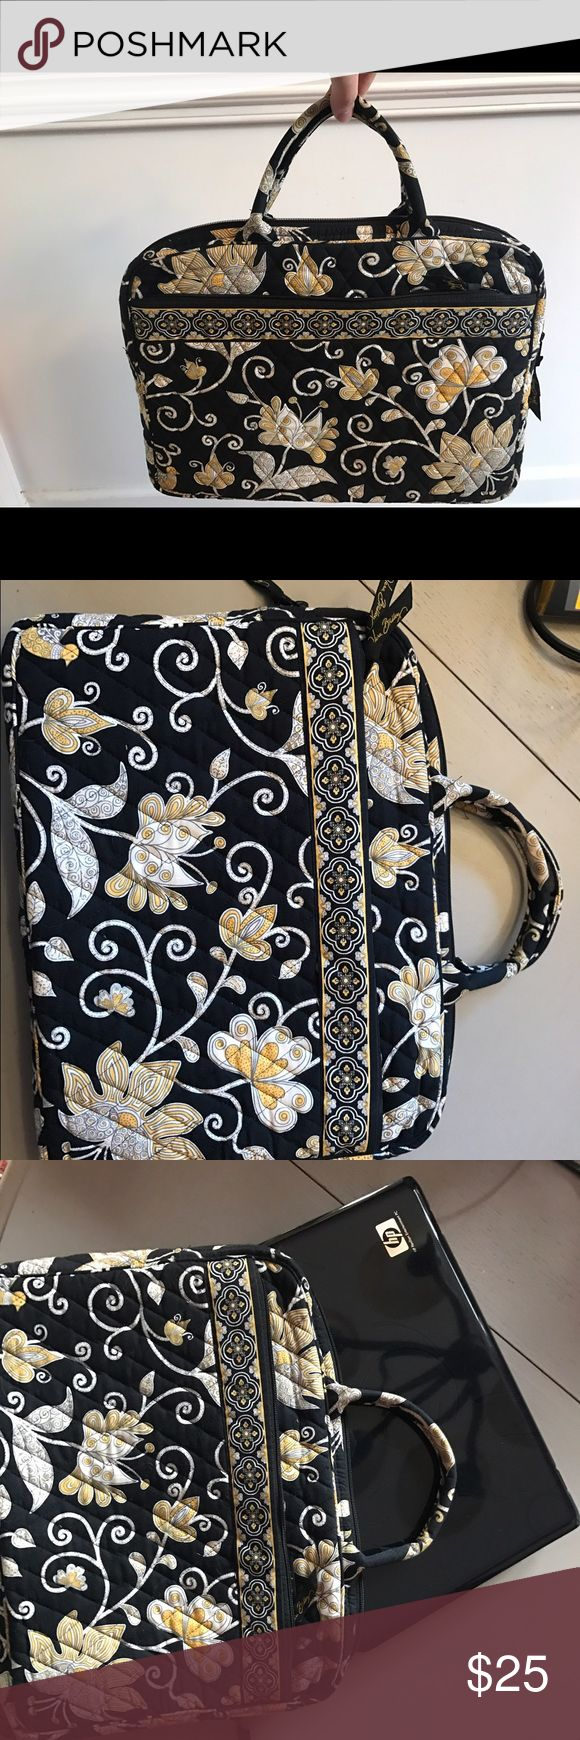 Vera Bradley laptop bag Black, yellow, and white floral pattern, front zipper pocket, holds 13.5 inch mac book pro, lightly used Vera Bradley Bags Laptop Bags